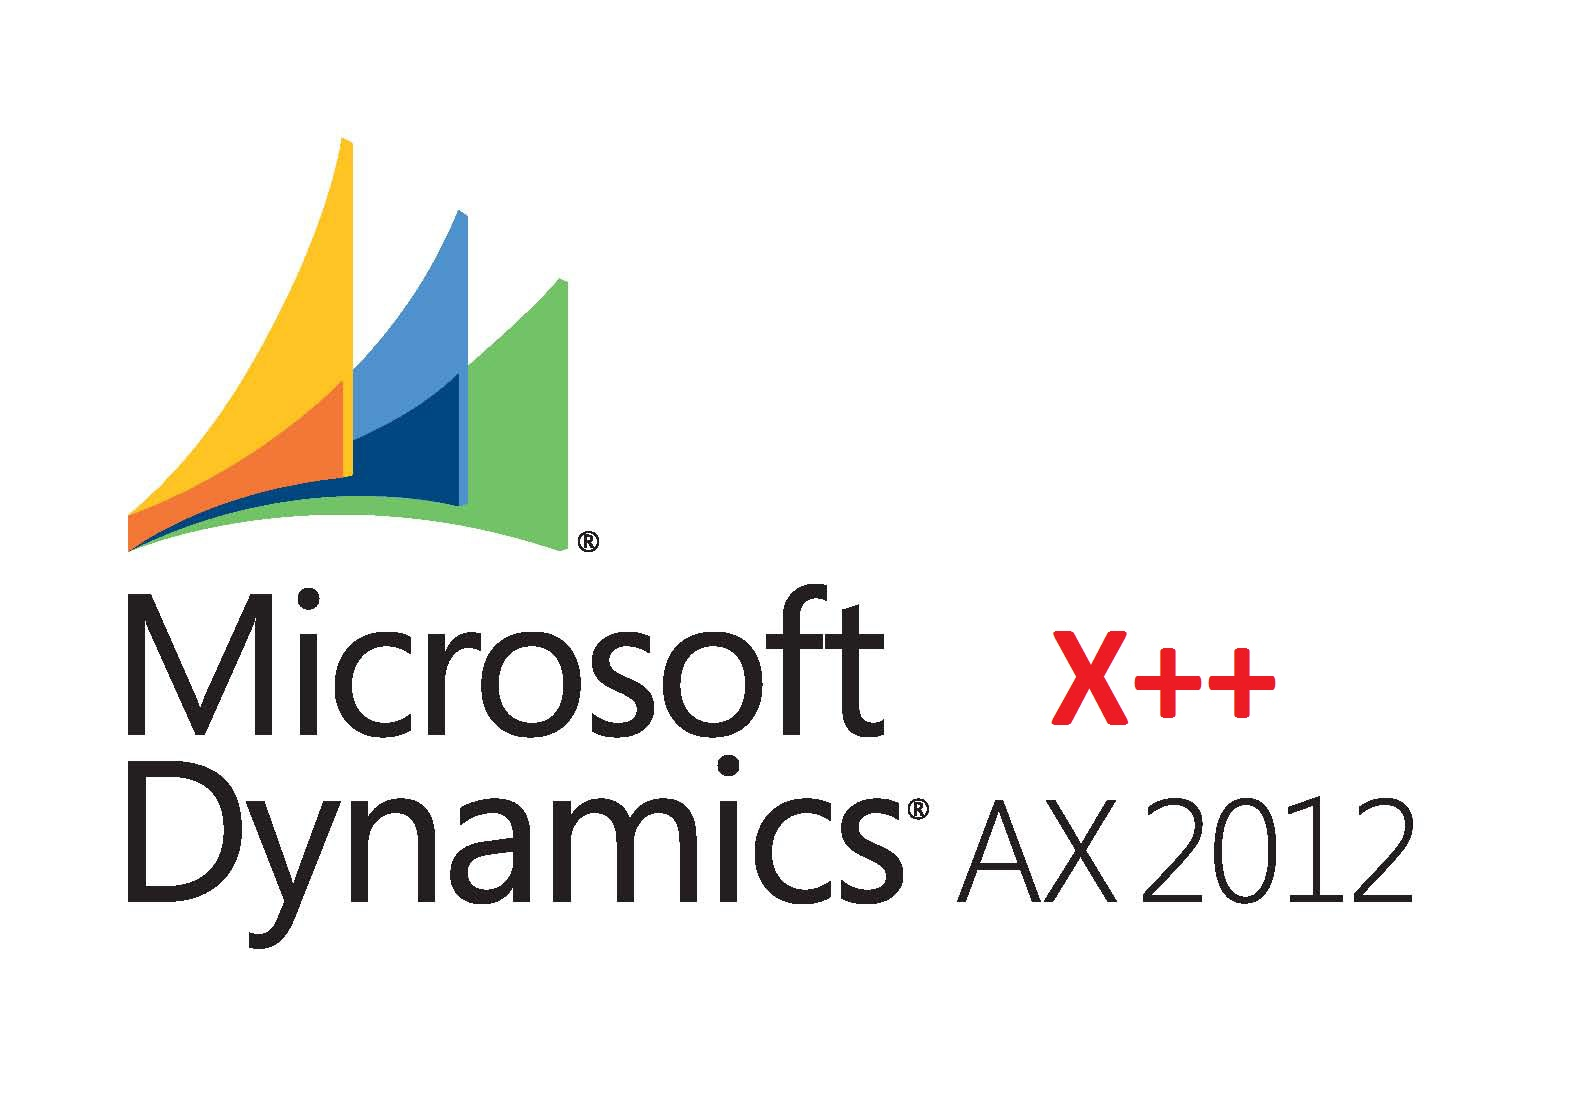 Record a Purchase Invoice In Dynamics AX